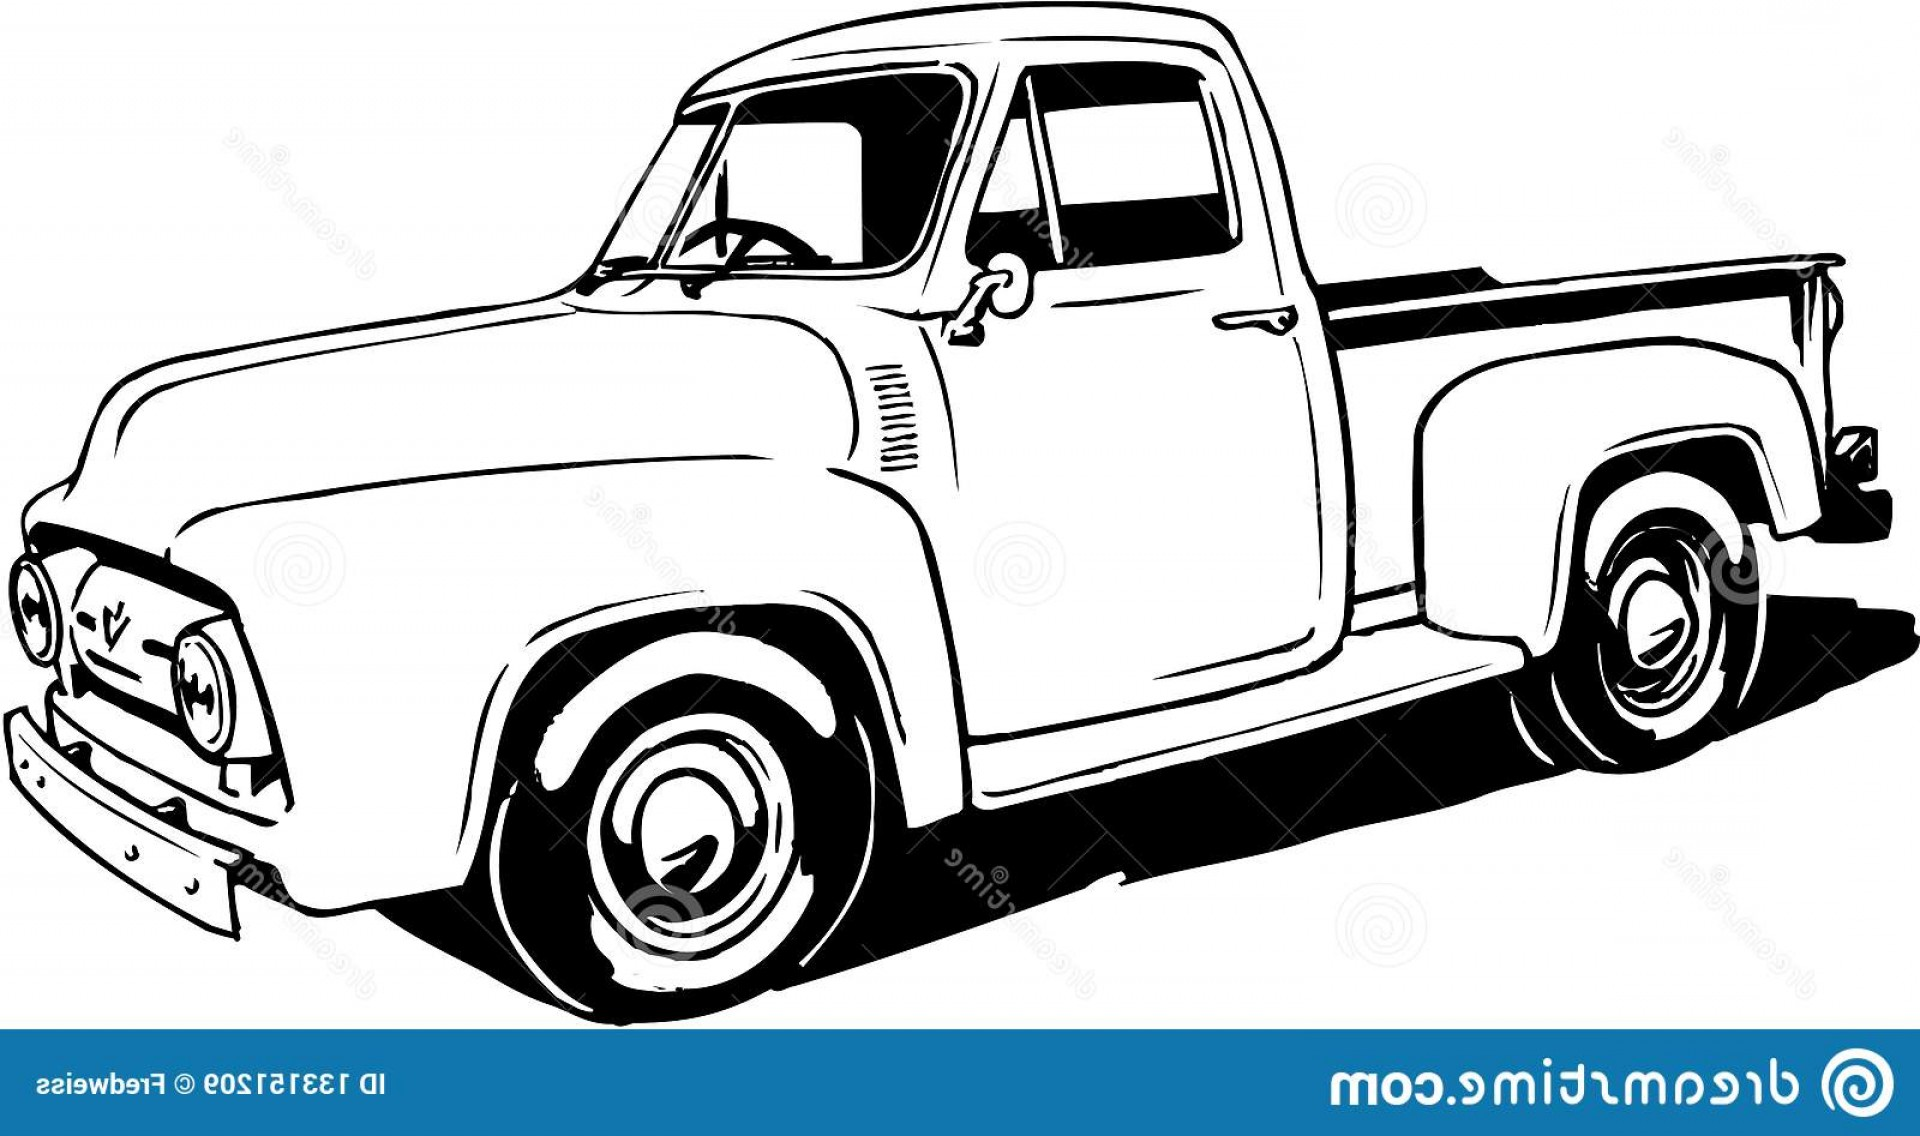 Ford Vector Art: Vector Illustration Ford Pickup Ford Pickup Illustration Image